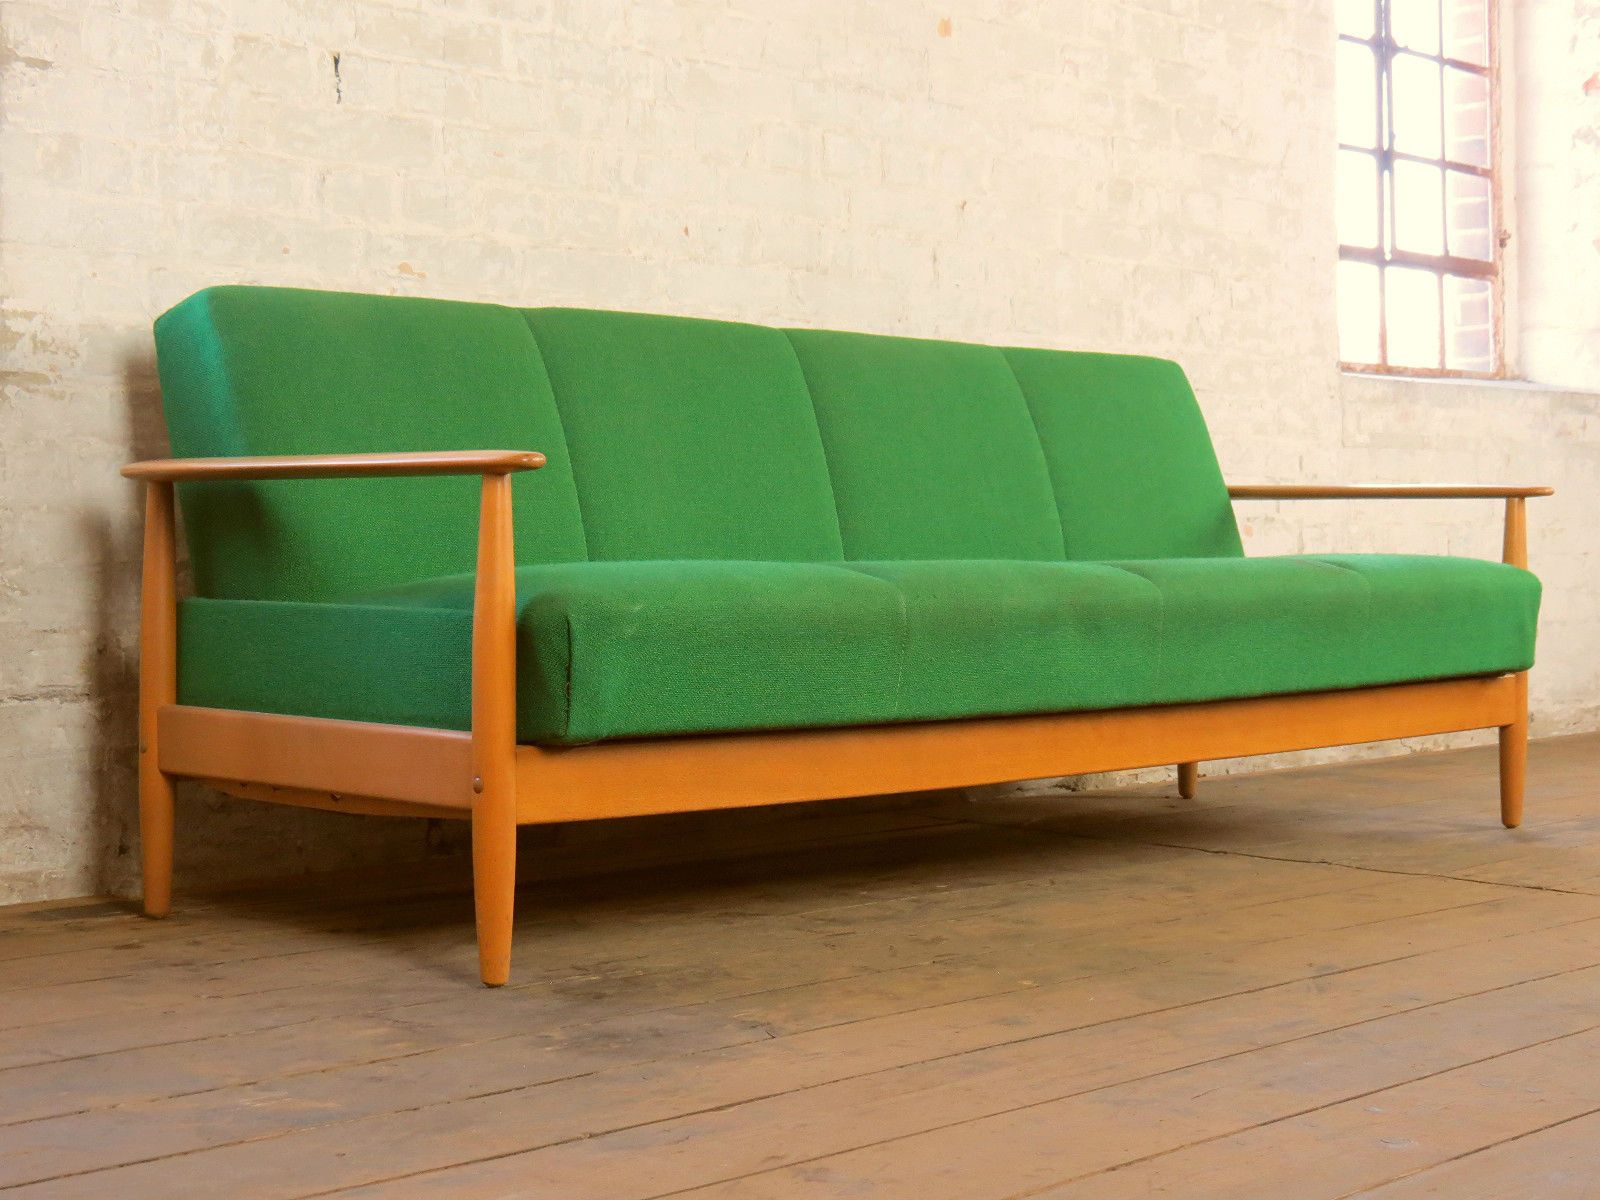 Danish Style Sofa Bed Uk Set Chair Designs Mid Century Design Retro 3 Seater Club Daybed